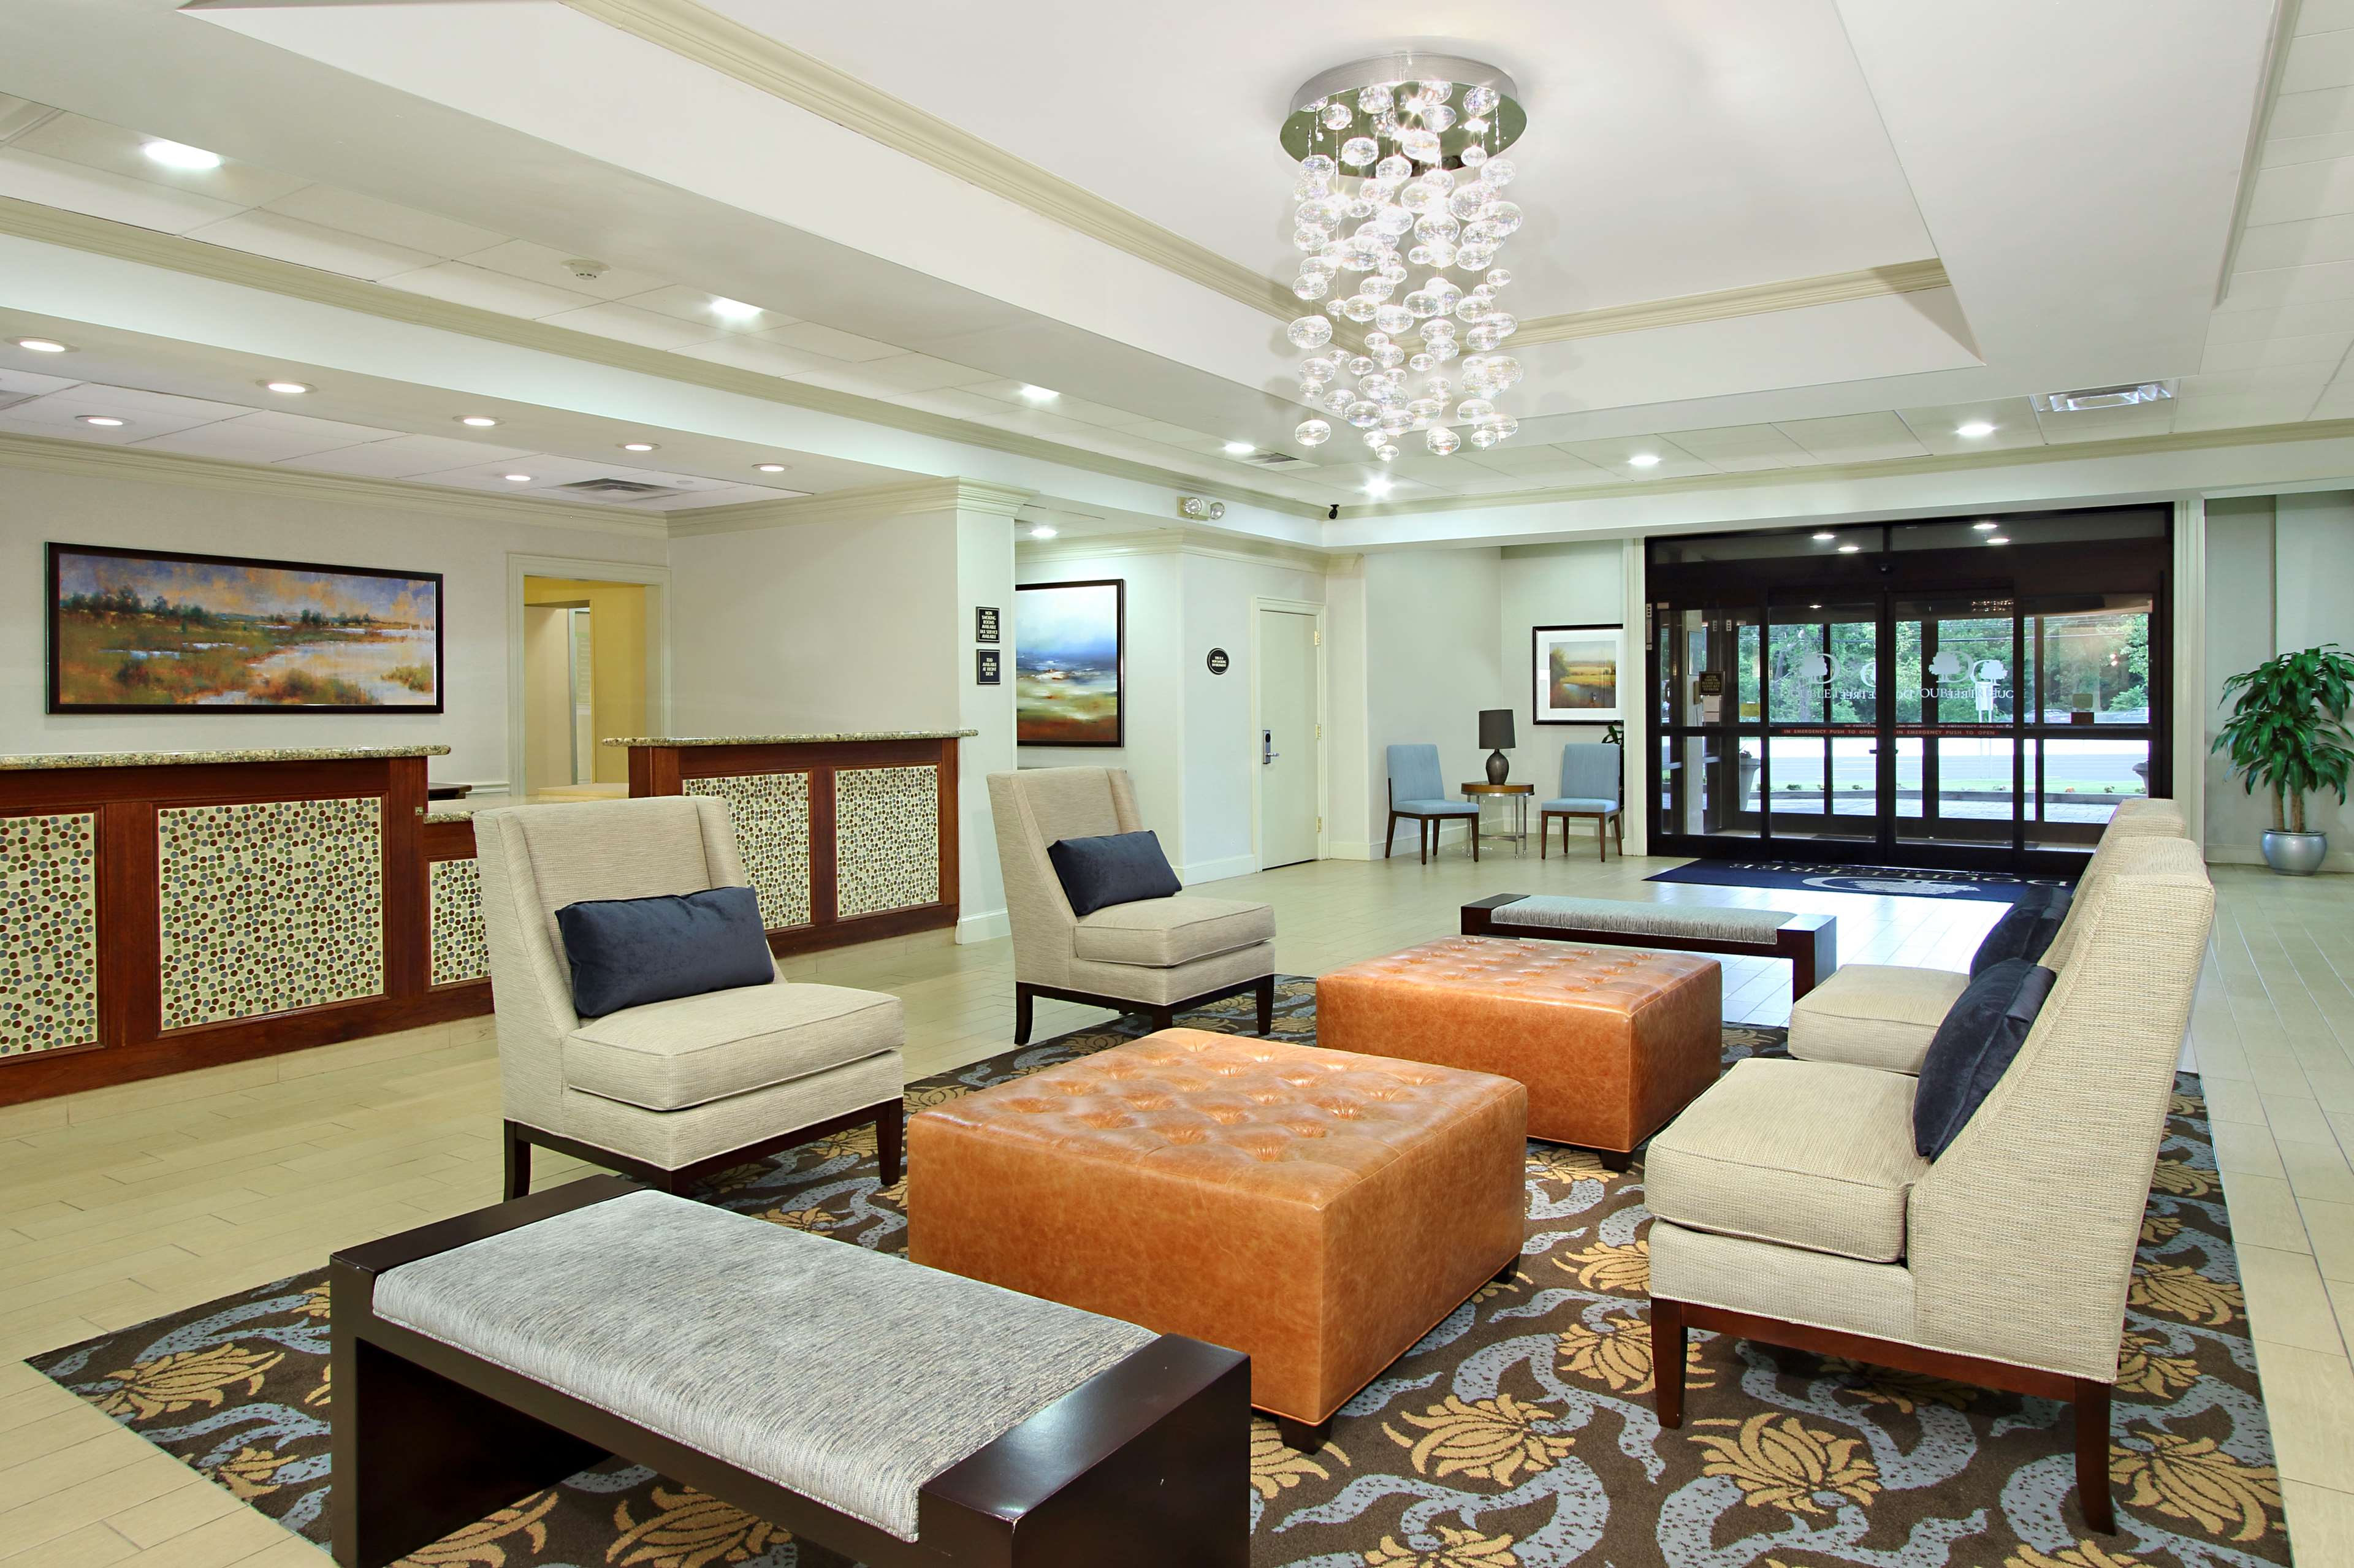 DoubleTree by Hilton Hotel Mahwah image 5